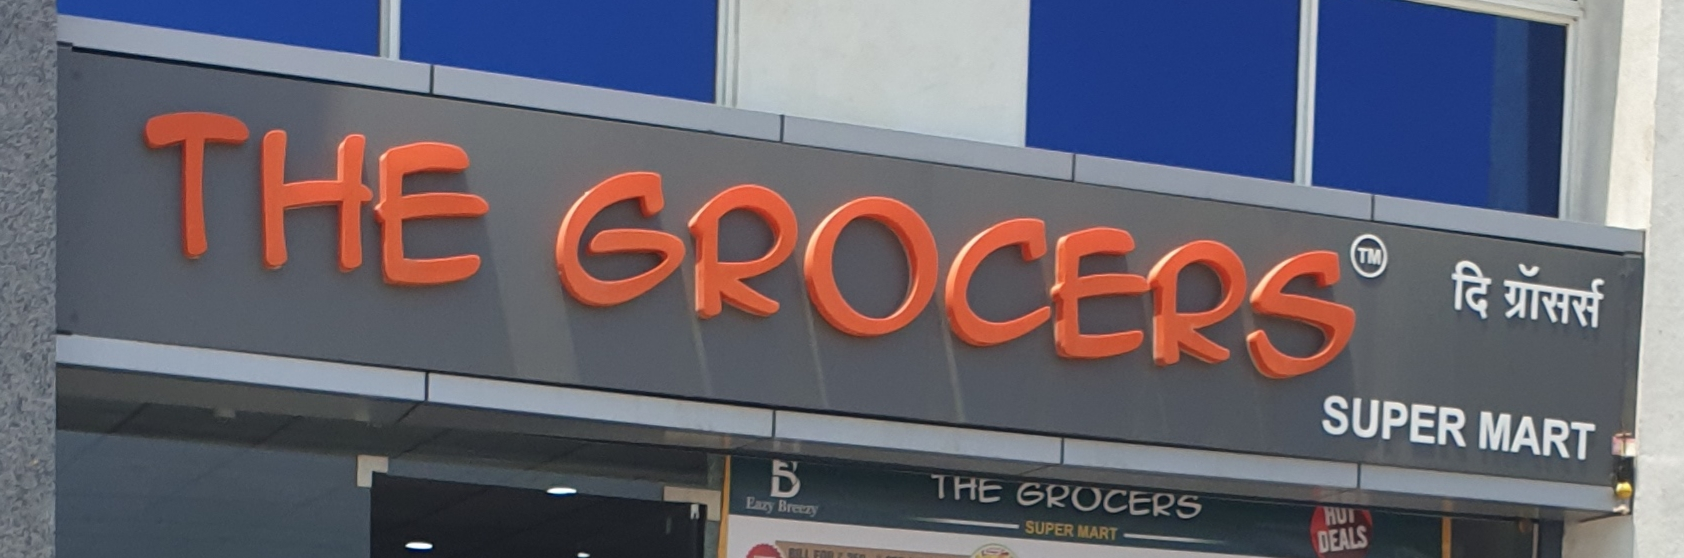 The grocers Grocery Store in Wagholi Pune